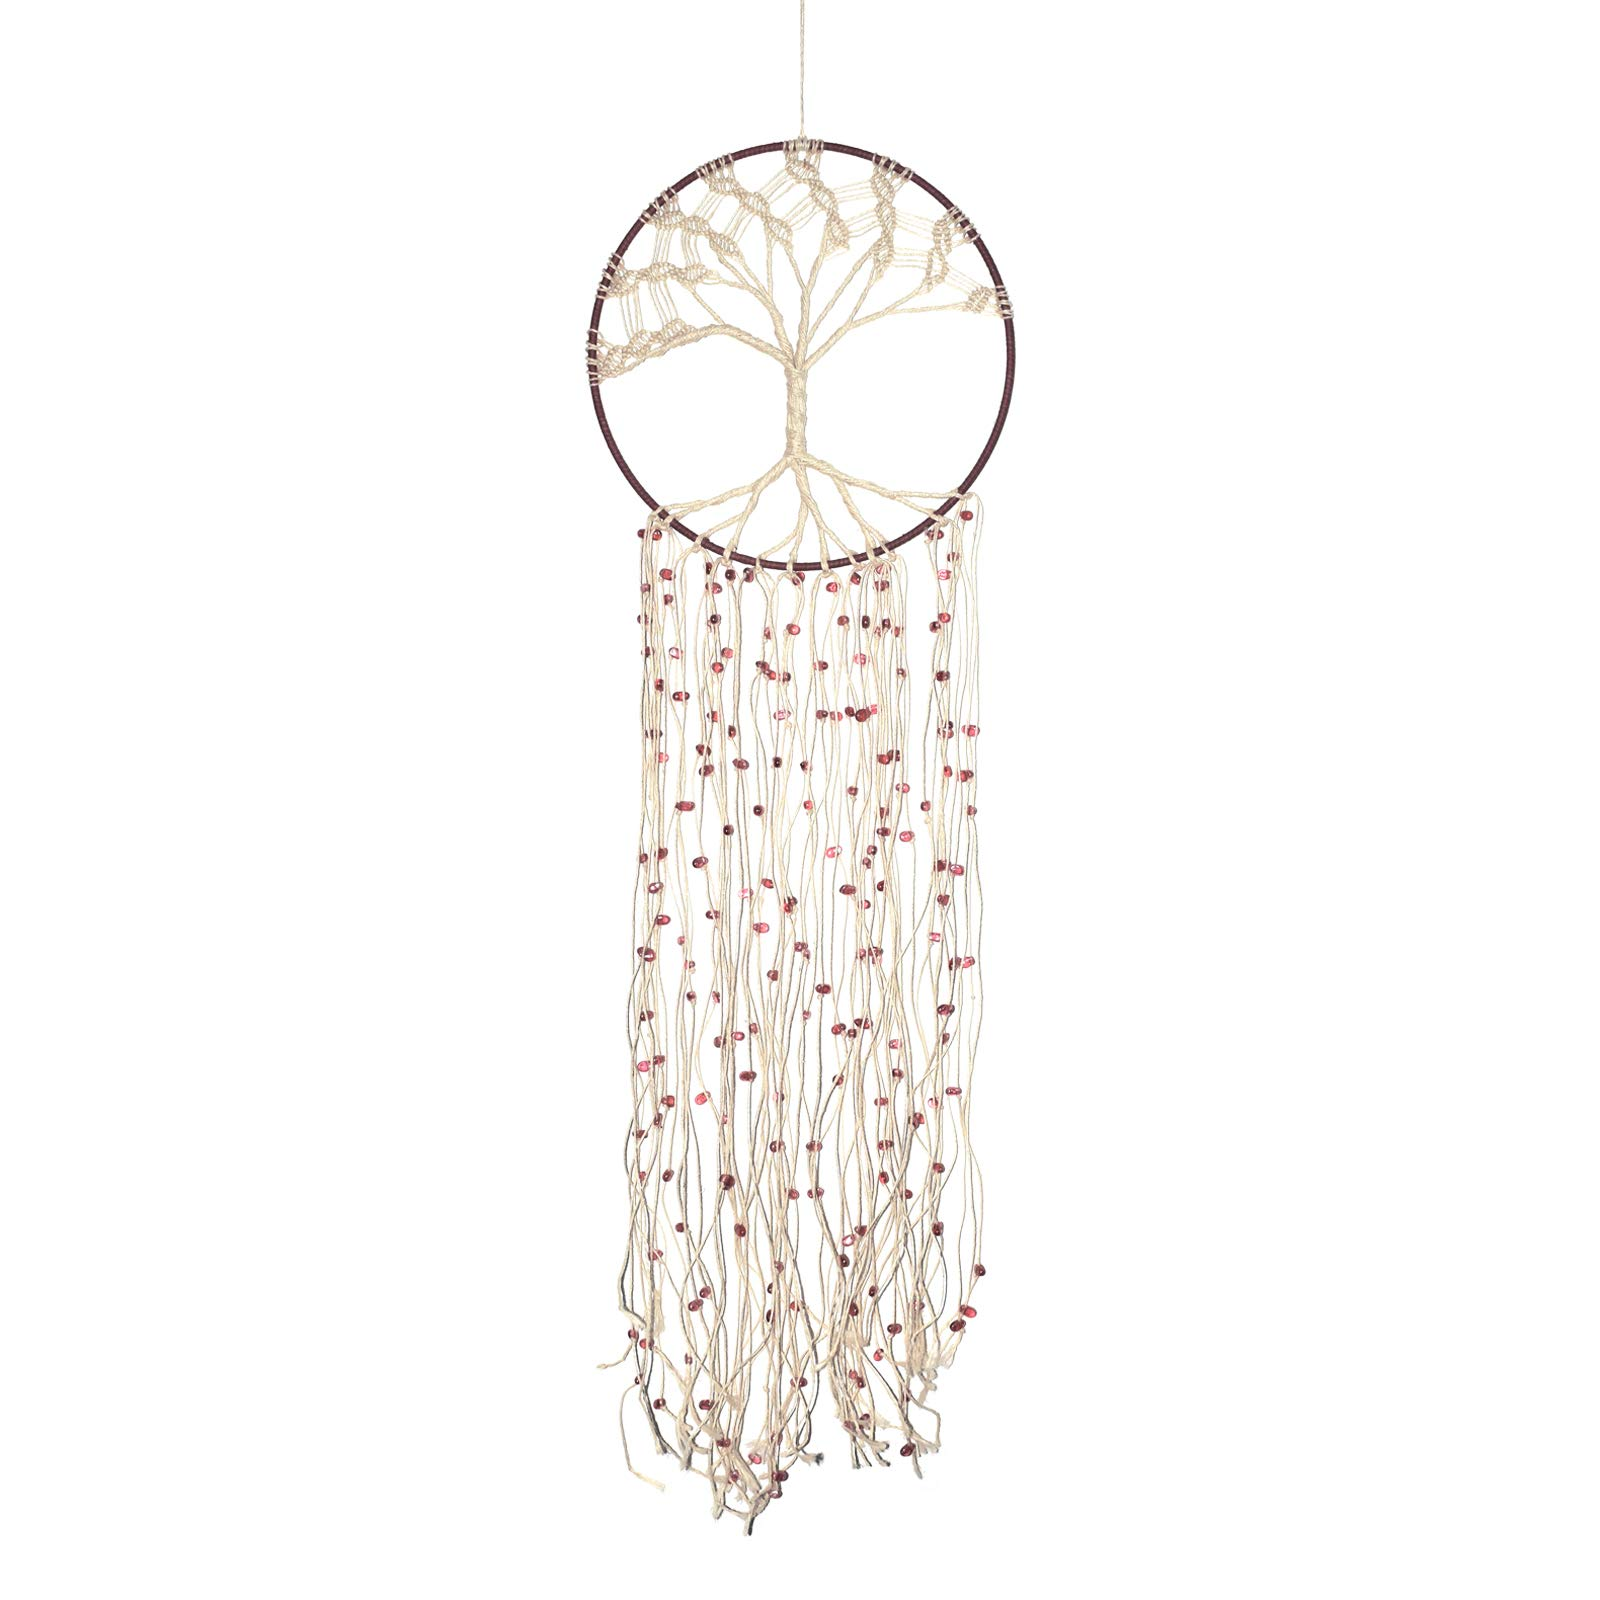 Asian Hobby Crafts Macrame Handcrafted Dream Catcher Wall Hanging - Jute Tree Boho Style for Room Decor, Nursery Decor, Baby Shower, Gifting, Size - 30 x 10 inches (L x Dia)